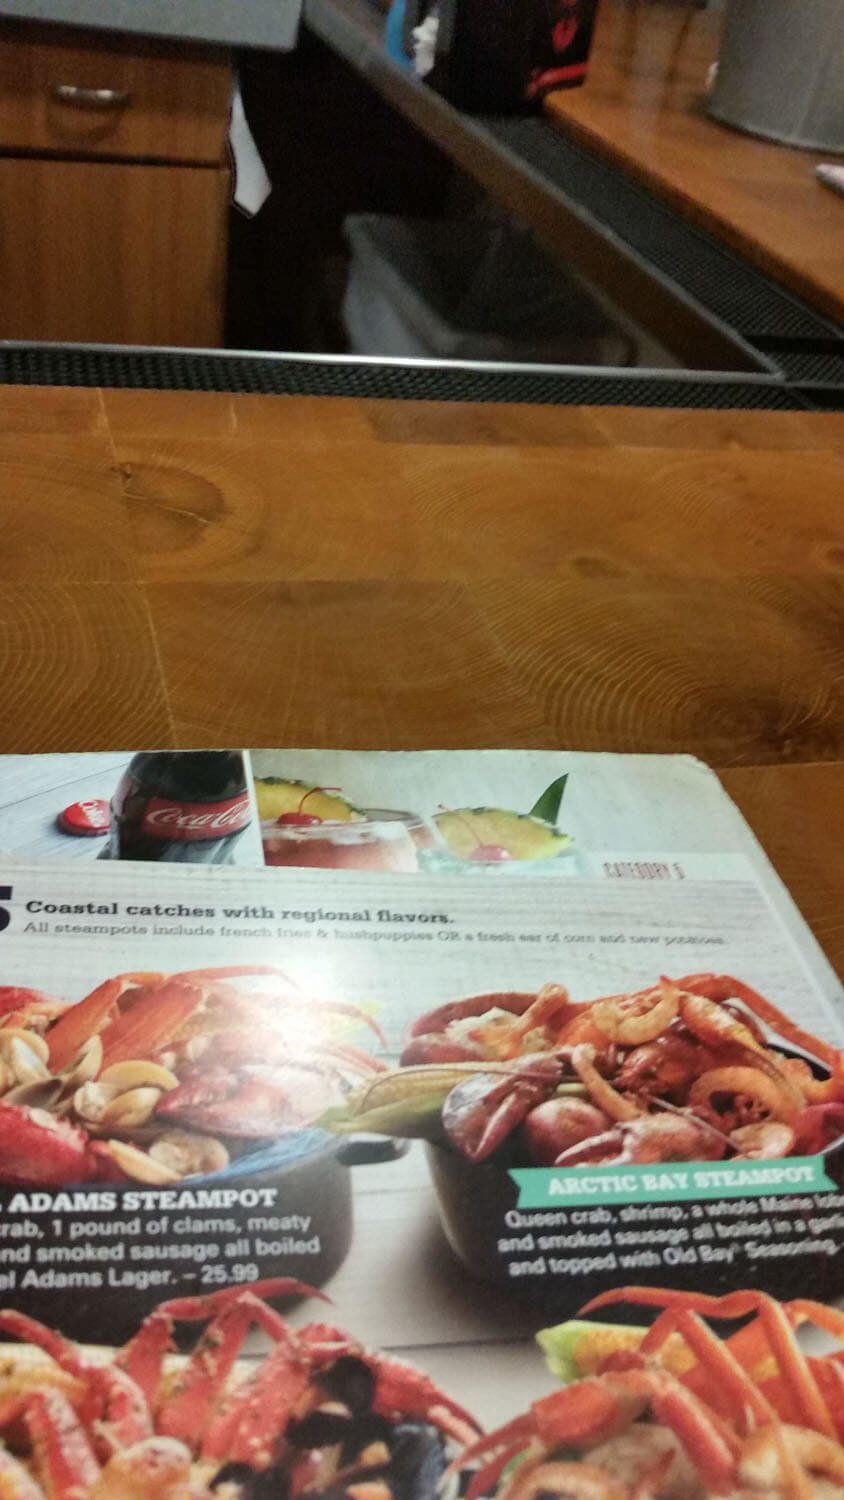 Joe's Crab Shack Menu – 20